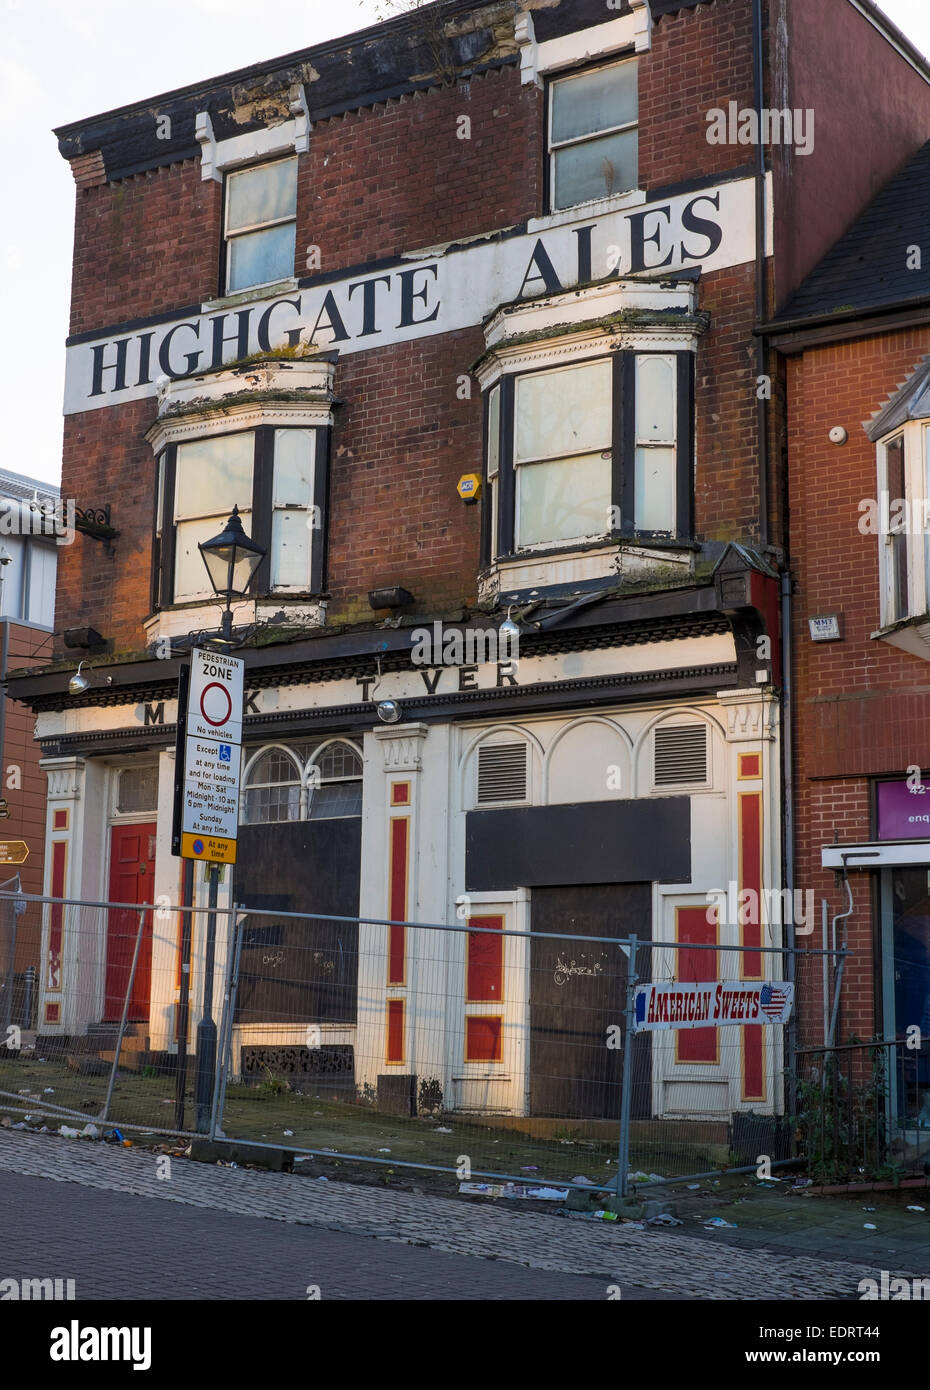 A closed down pub in Walsall town centre, West Midlands, England. - Stock Image